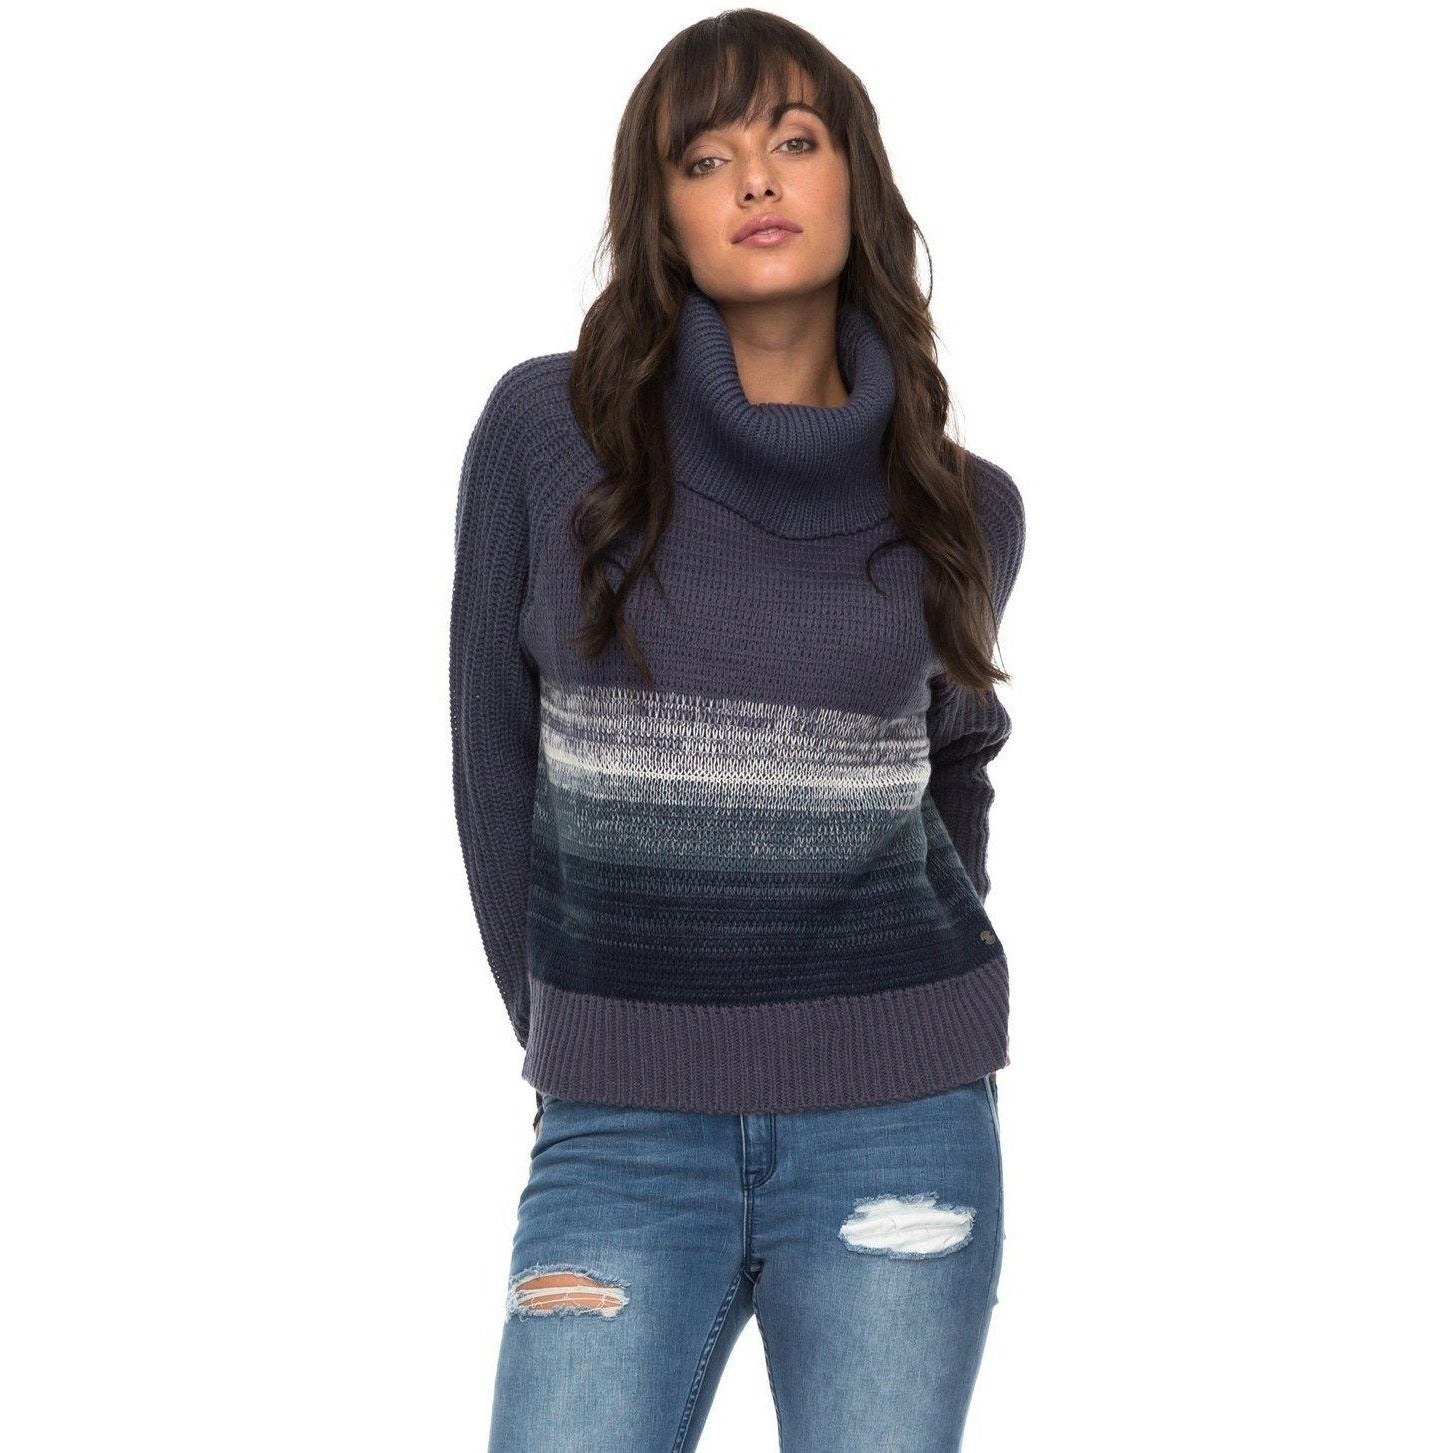 Roxy Morning Sun - Women's Turtleneck Sweatshirt - 88 Gear